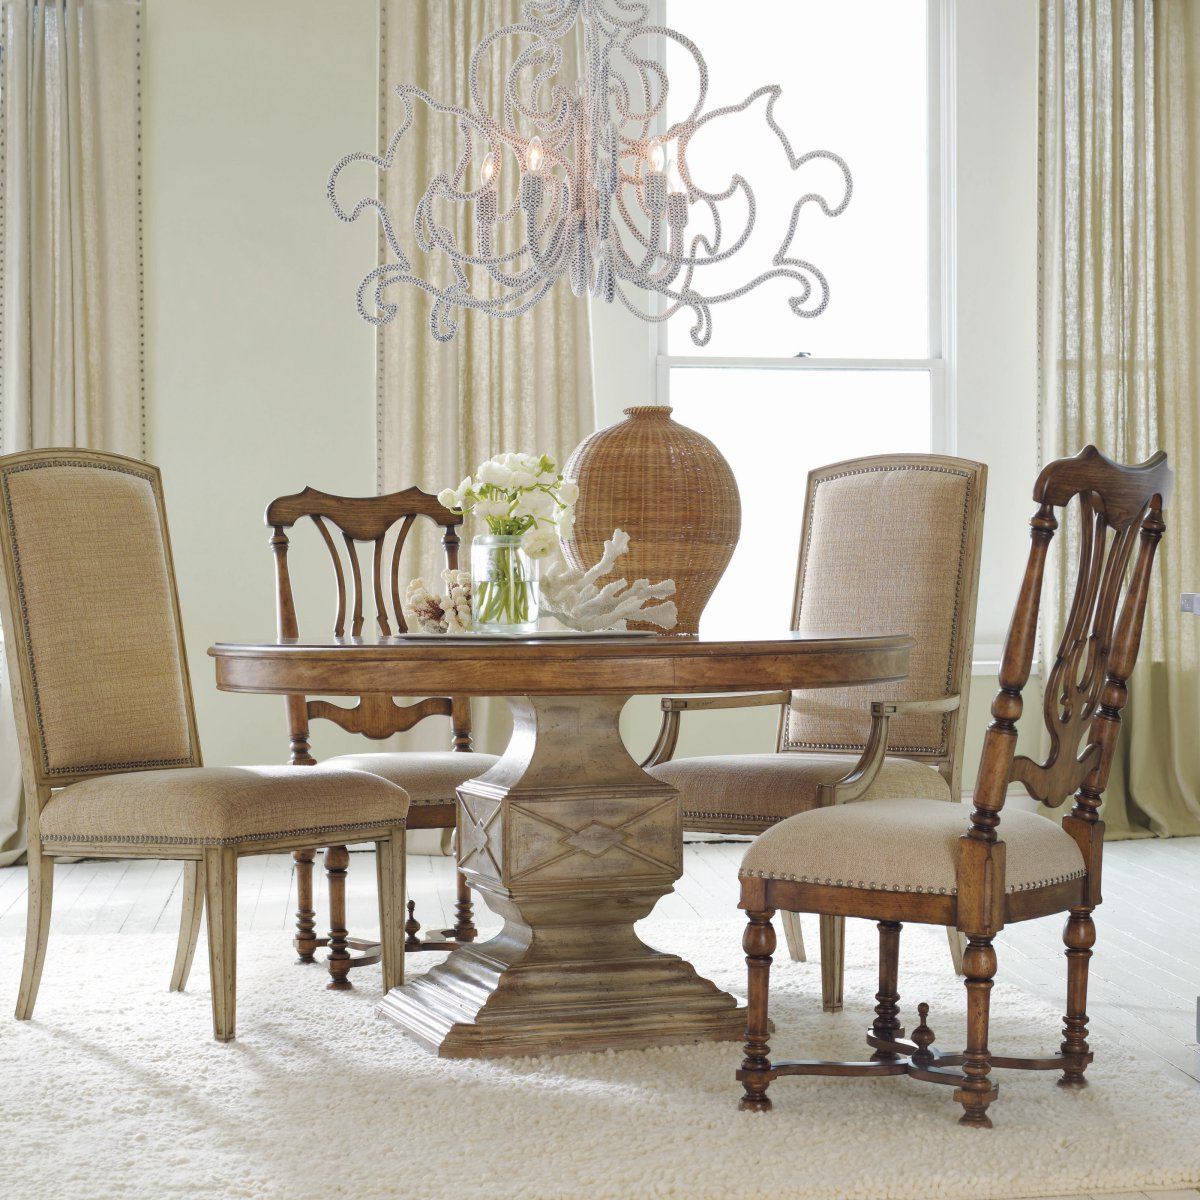 Small Round Dining Tables With Reclaimed Wood Within Well Known White Round Pedestal Dining Table Dining Rooms Wonderful (View 17 of 25)